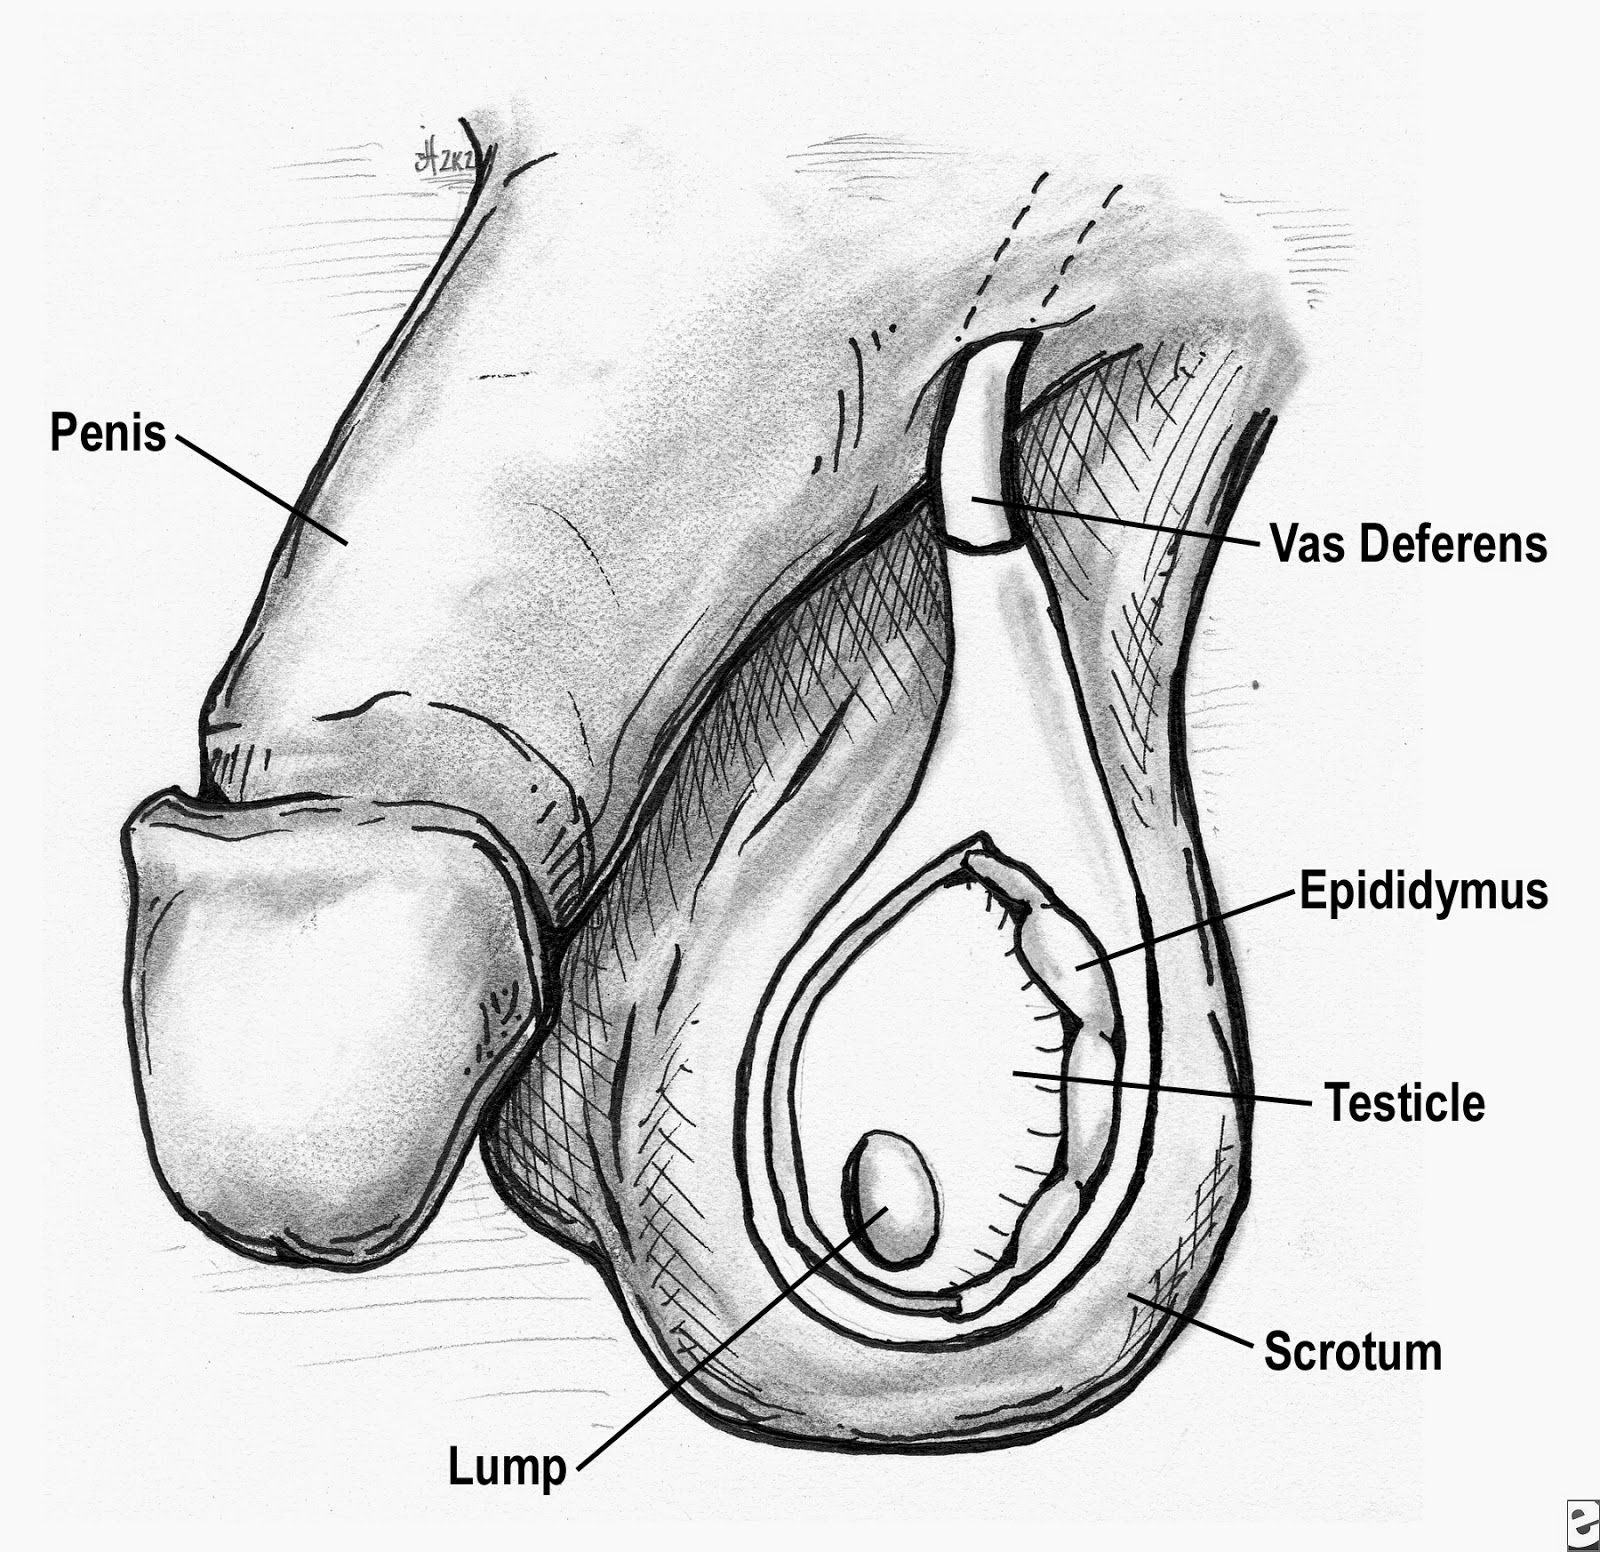 Dealing With Scrotal and Testicular Problems